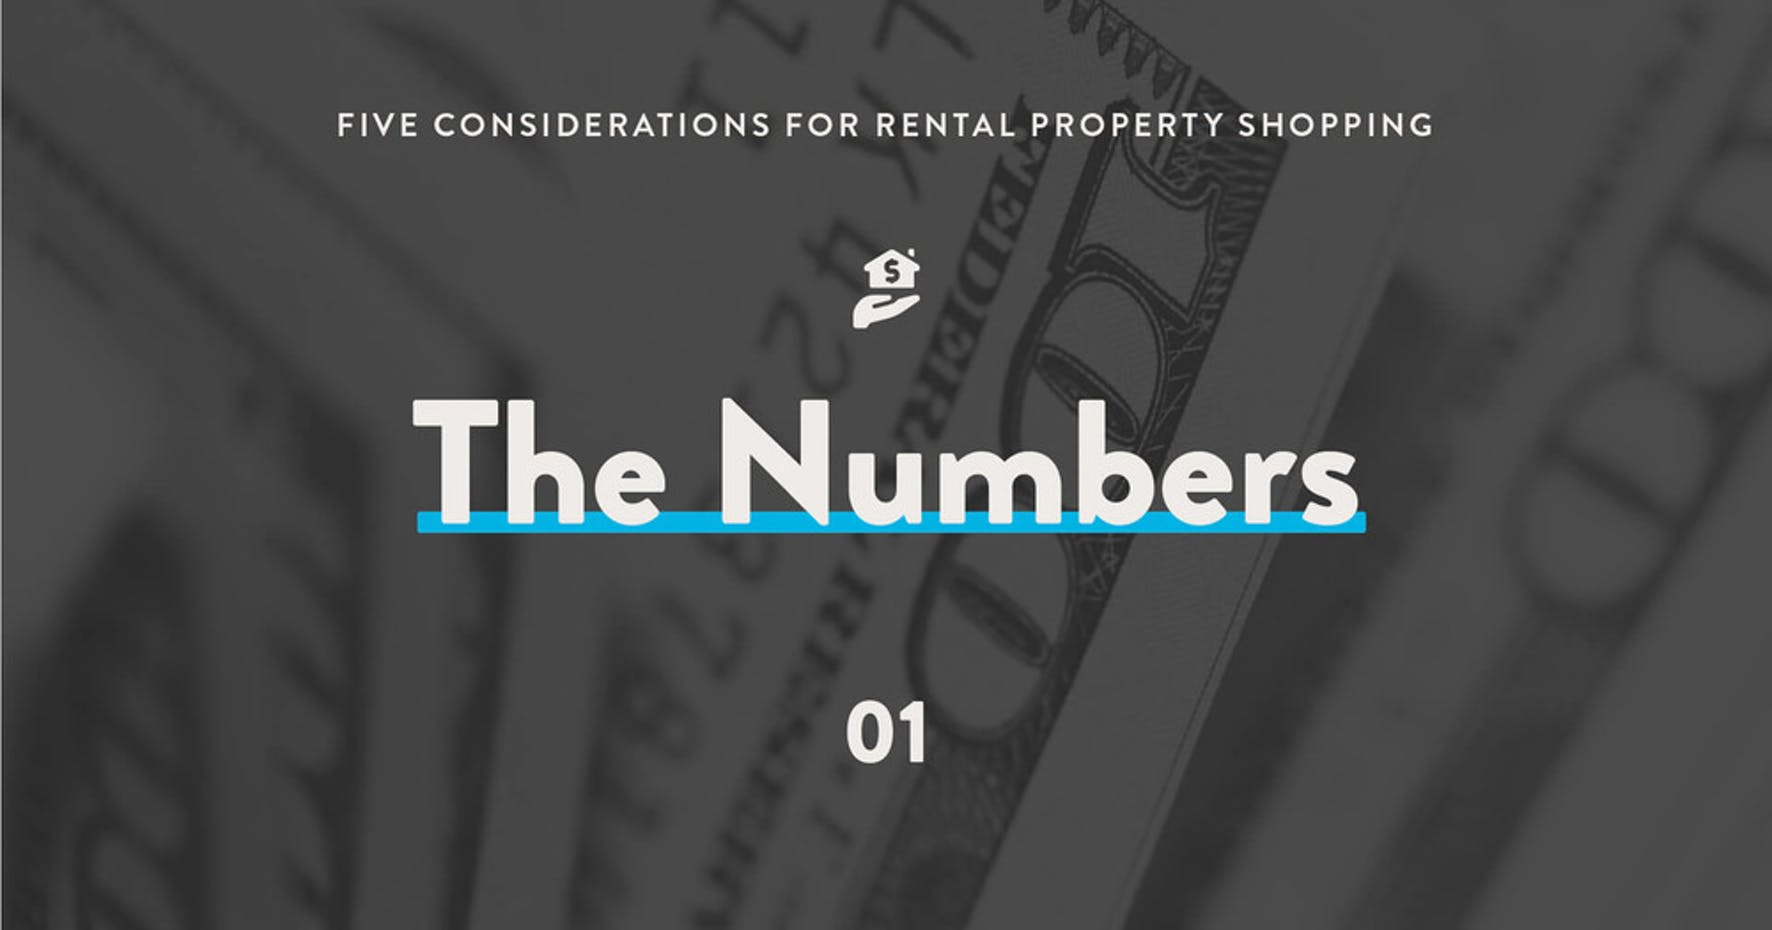 5 considerations for rental property shopping: 1 - Numbers